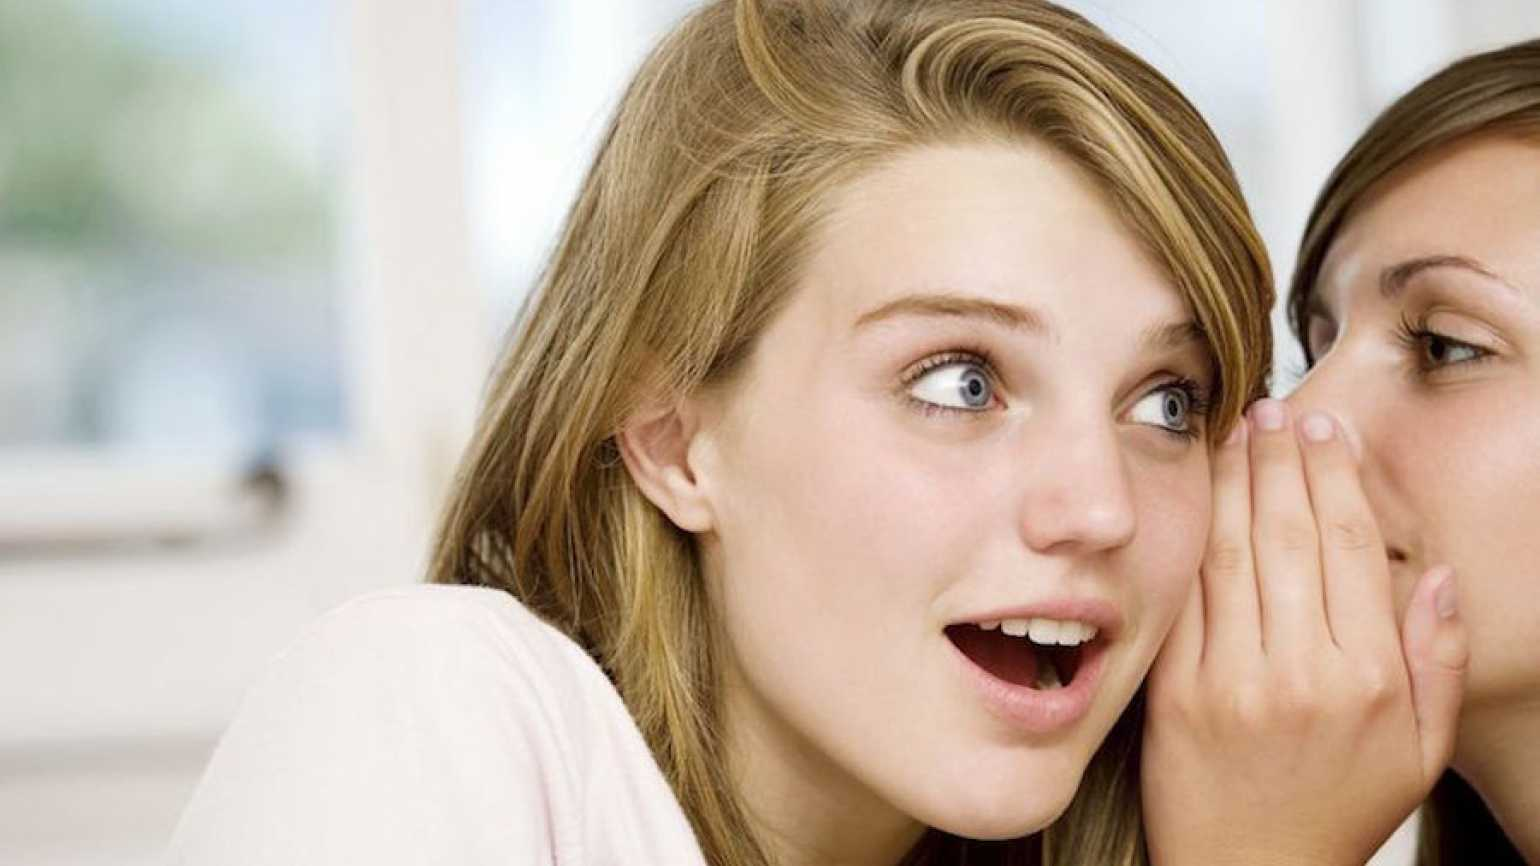 Encourage teen girls to spread positive comments, not mean ones.